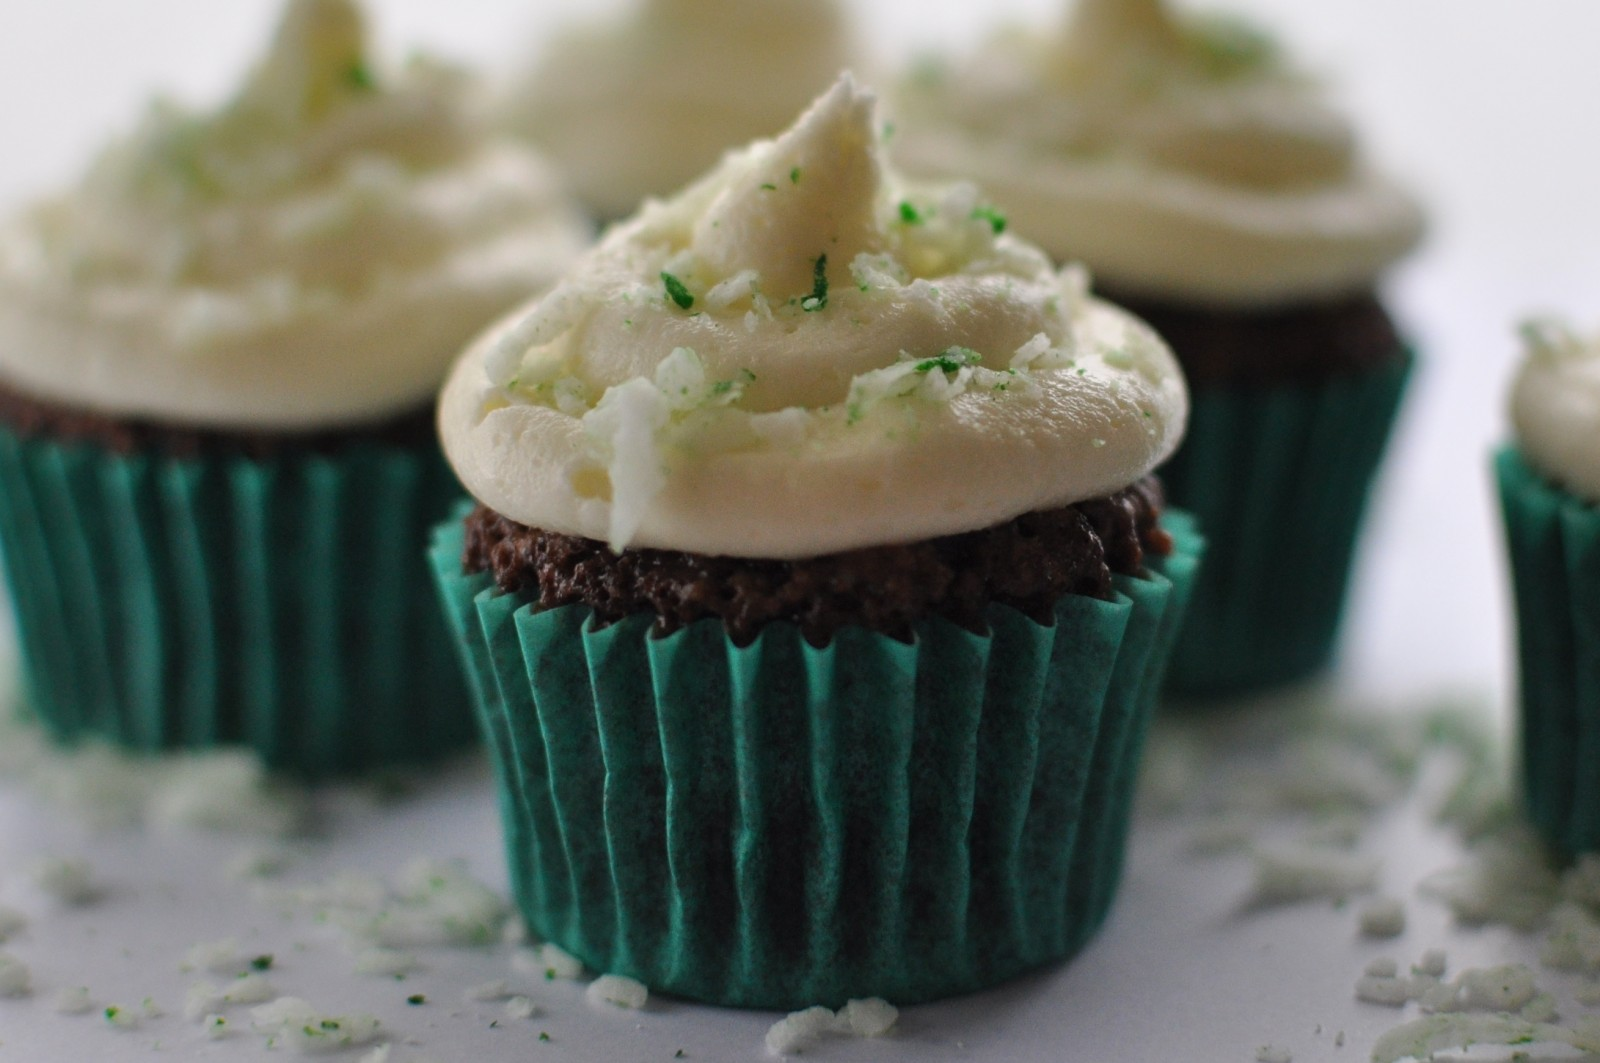 Choc-mint coconut cupcakes – Happy St Patrick's Day